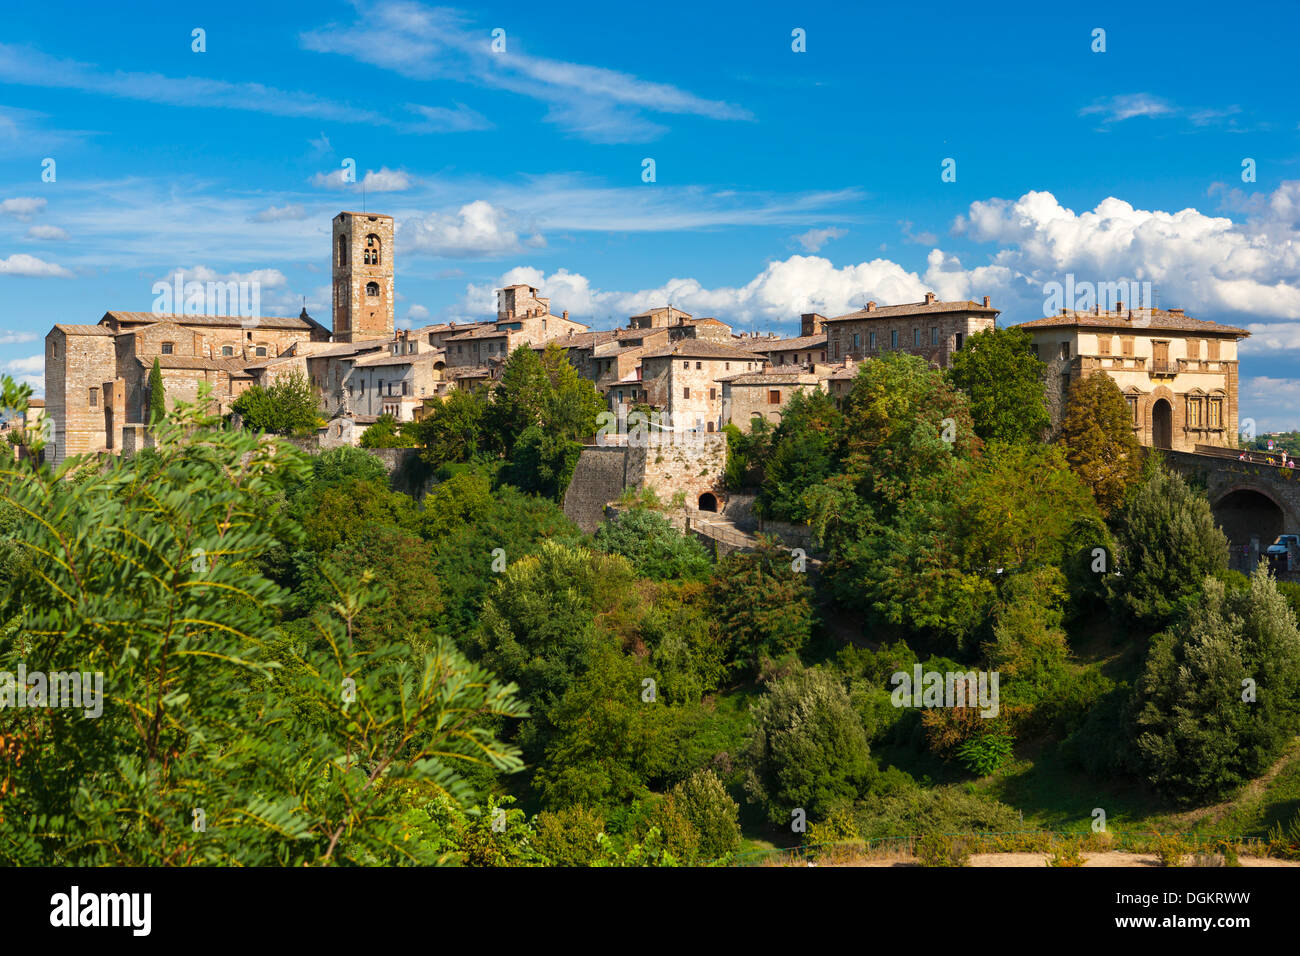 A view towards Colle di Val d'Elsa. - Stock Image